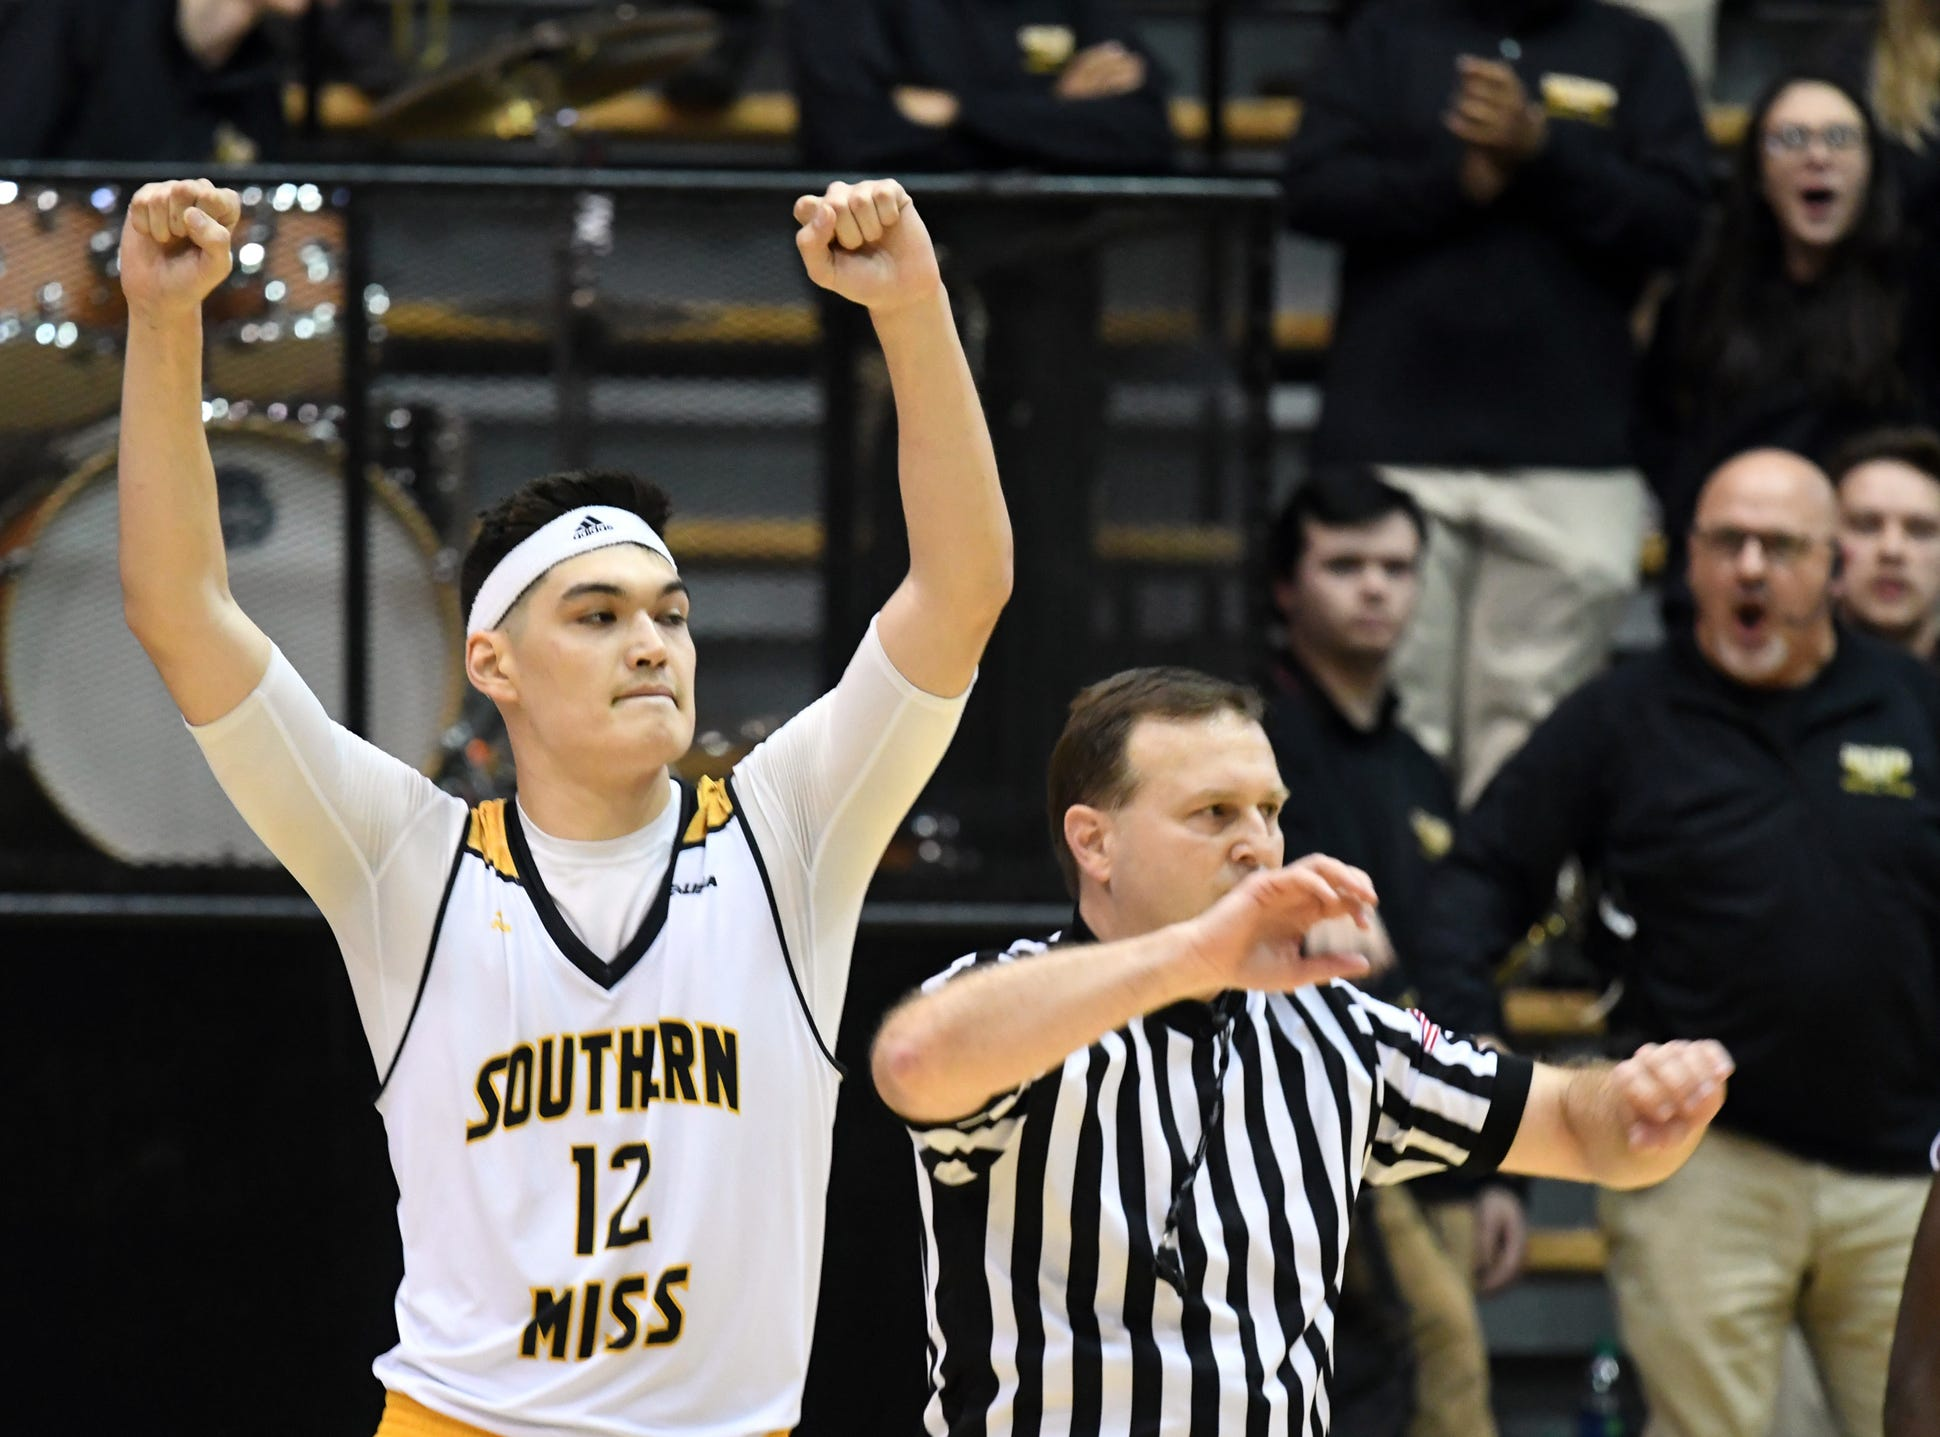 Southern Miss forward Tim Rowe celebrates after beating  Louisiana Tech in Reed Green Coliseum on Saturday, February 9, 2019.